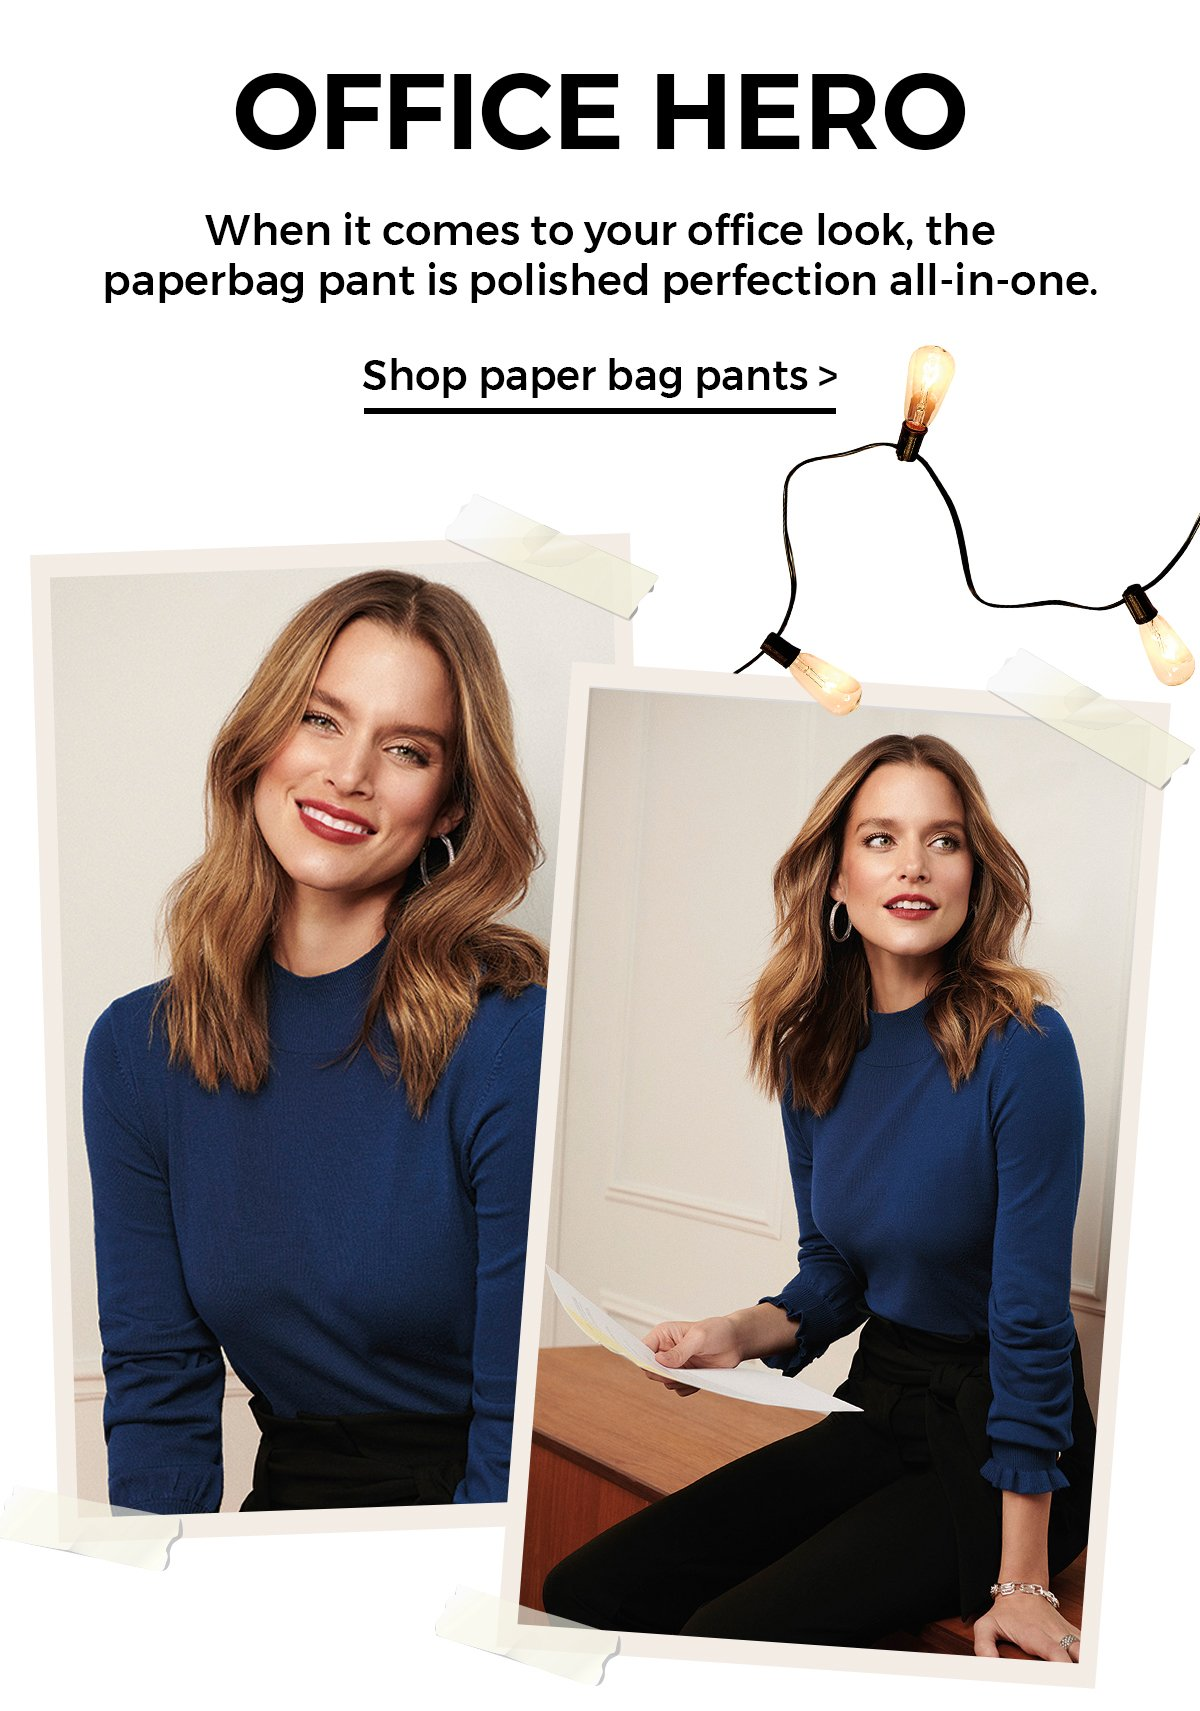 Office hero When it comes to your office look, the paperbag is a must-have. It's polished perfection all-in-one. *ecom exclusive watermark Shop now